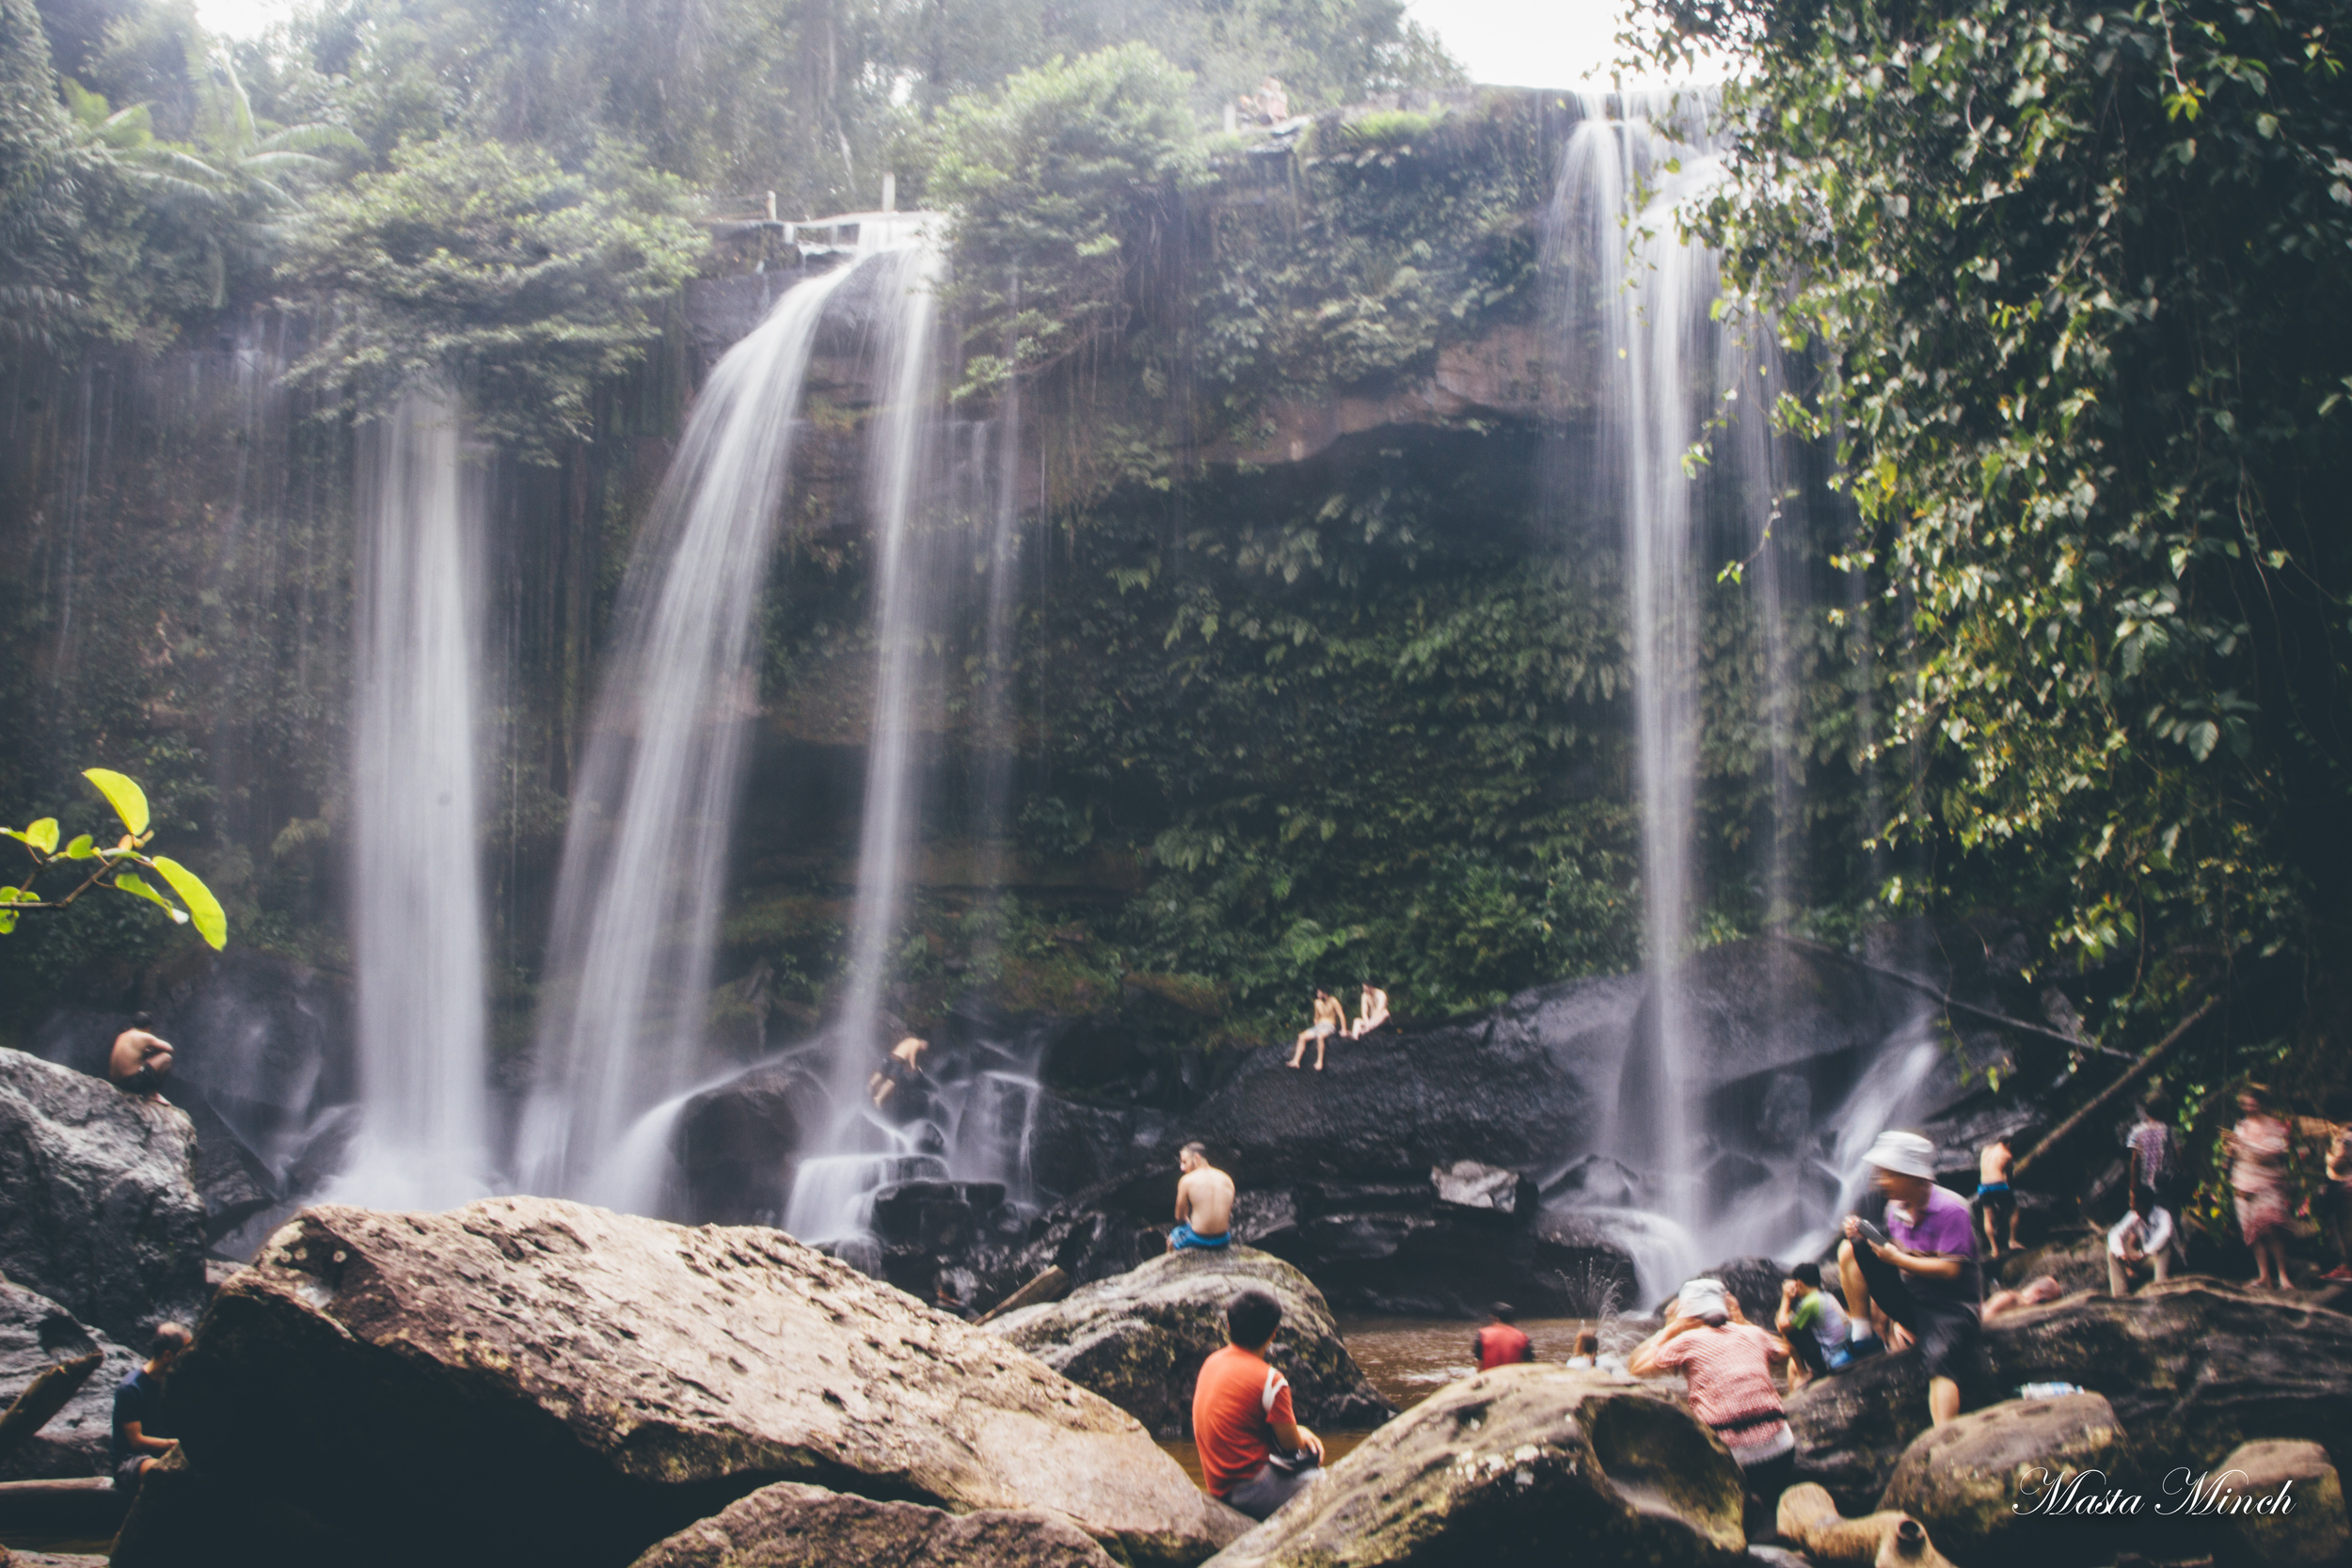 The waterfalls at Phnom Kulen. Quite a nice sight to see from the rest of dry Cambodia